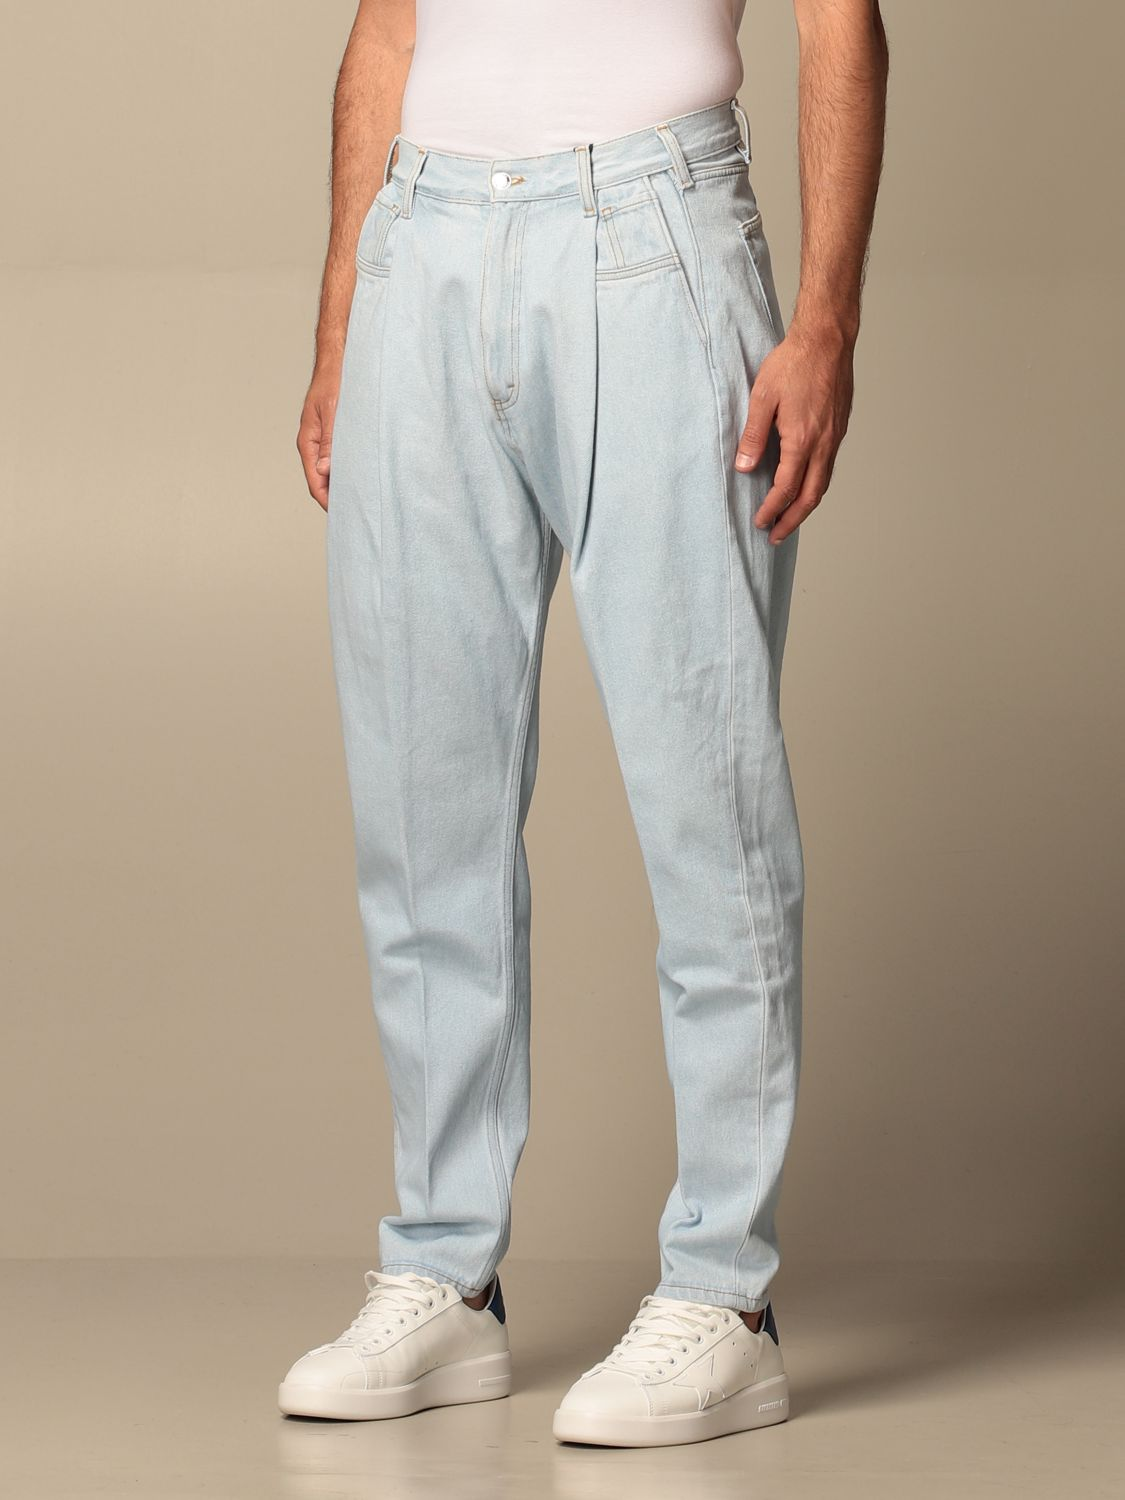 Jeans Hilfiger Collection: Jeans herren Hilfiger Collection stone washed 4